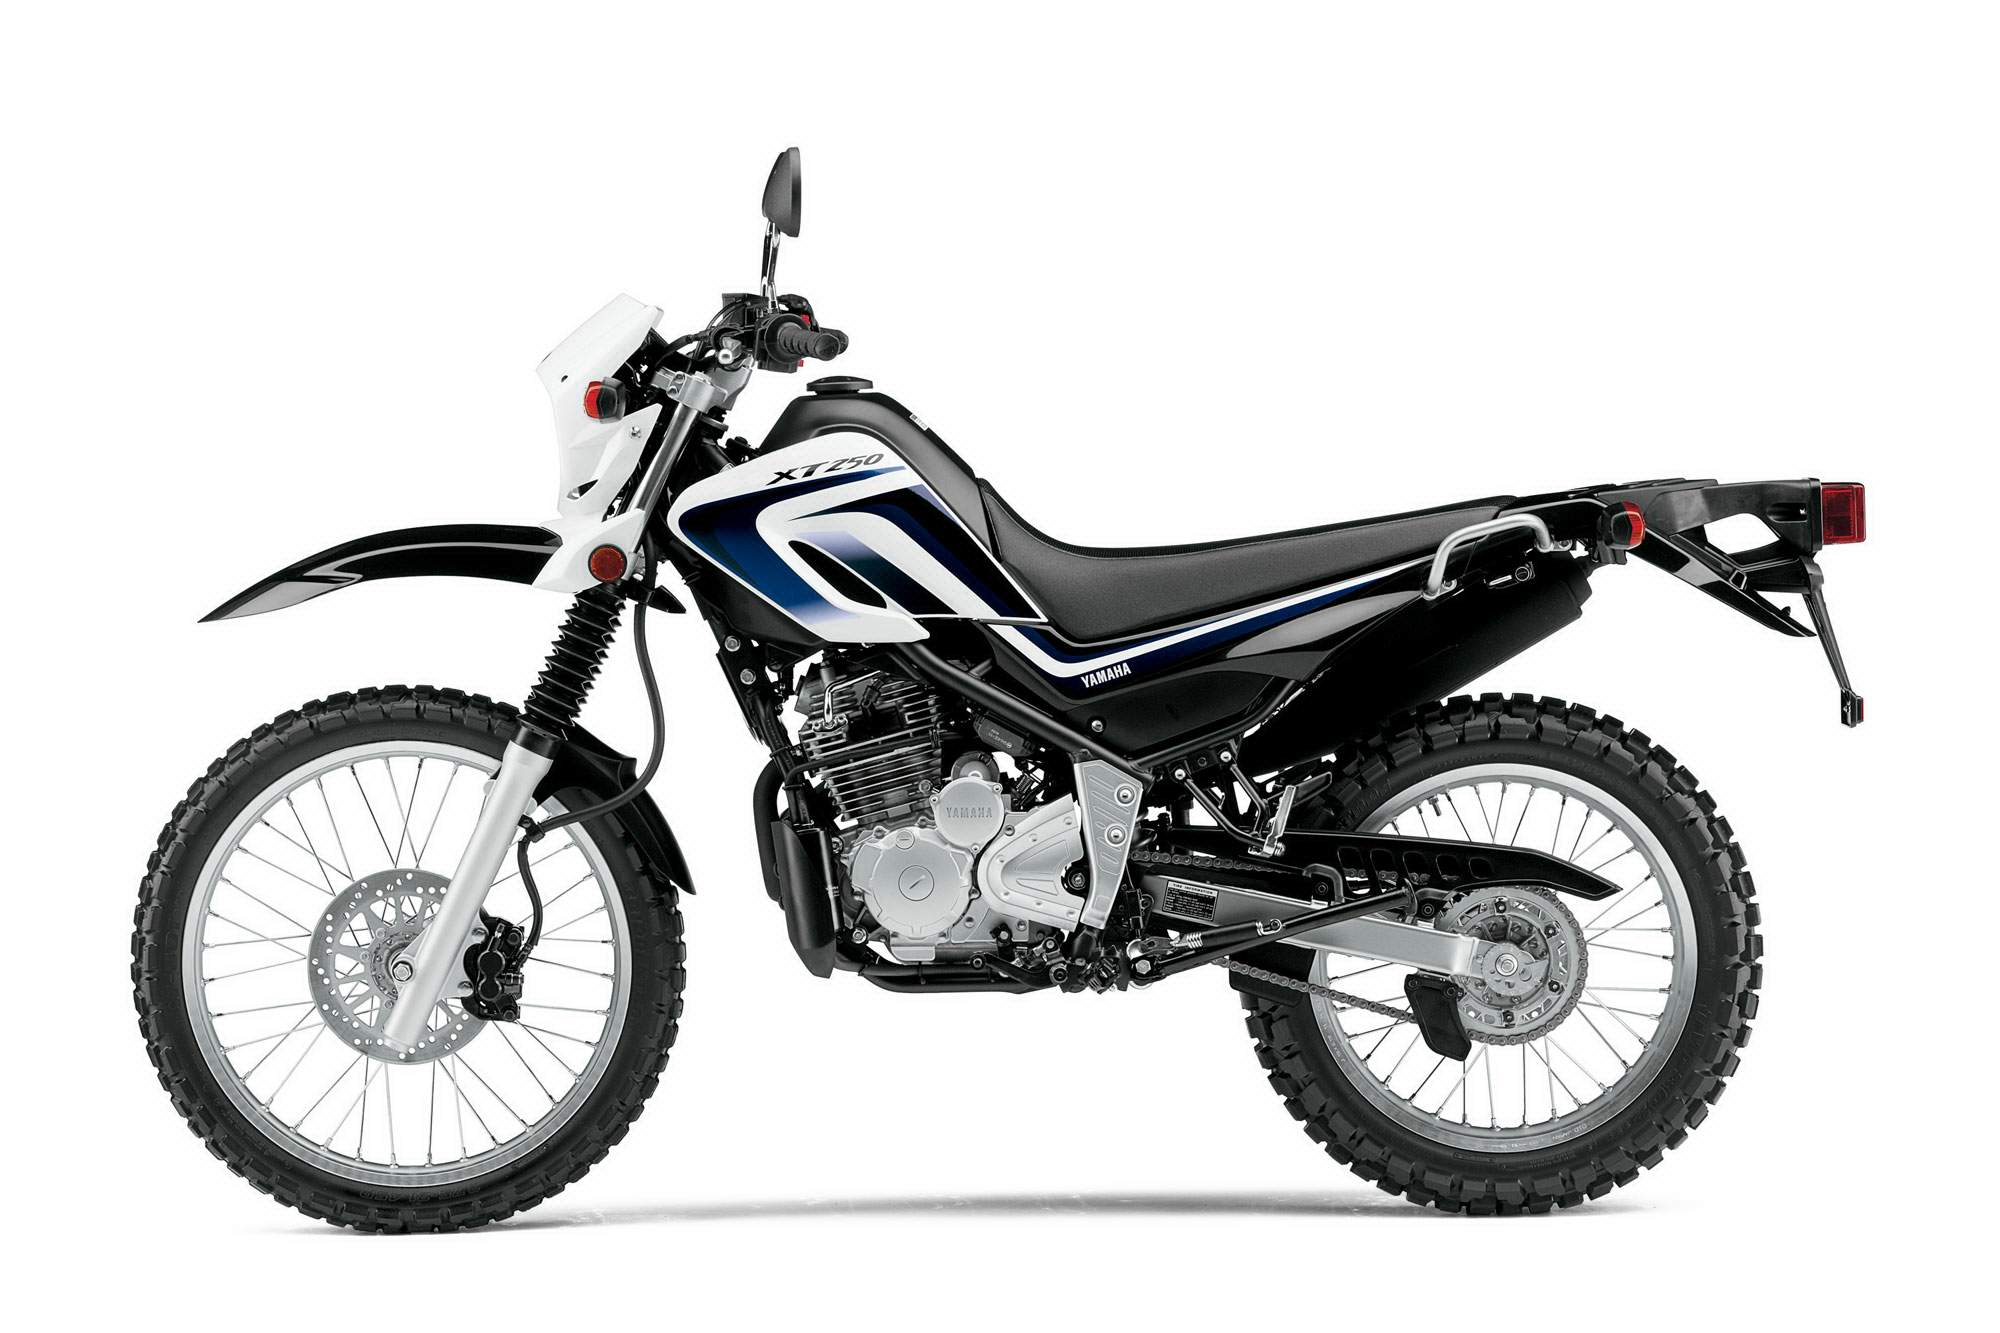 Yamaha Xt 250 Serow